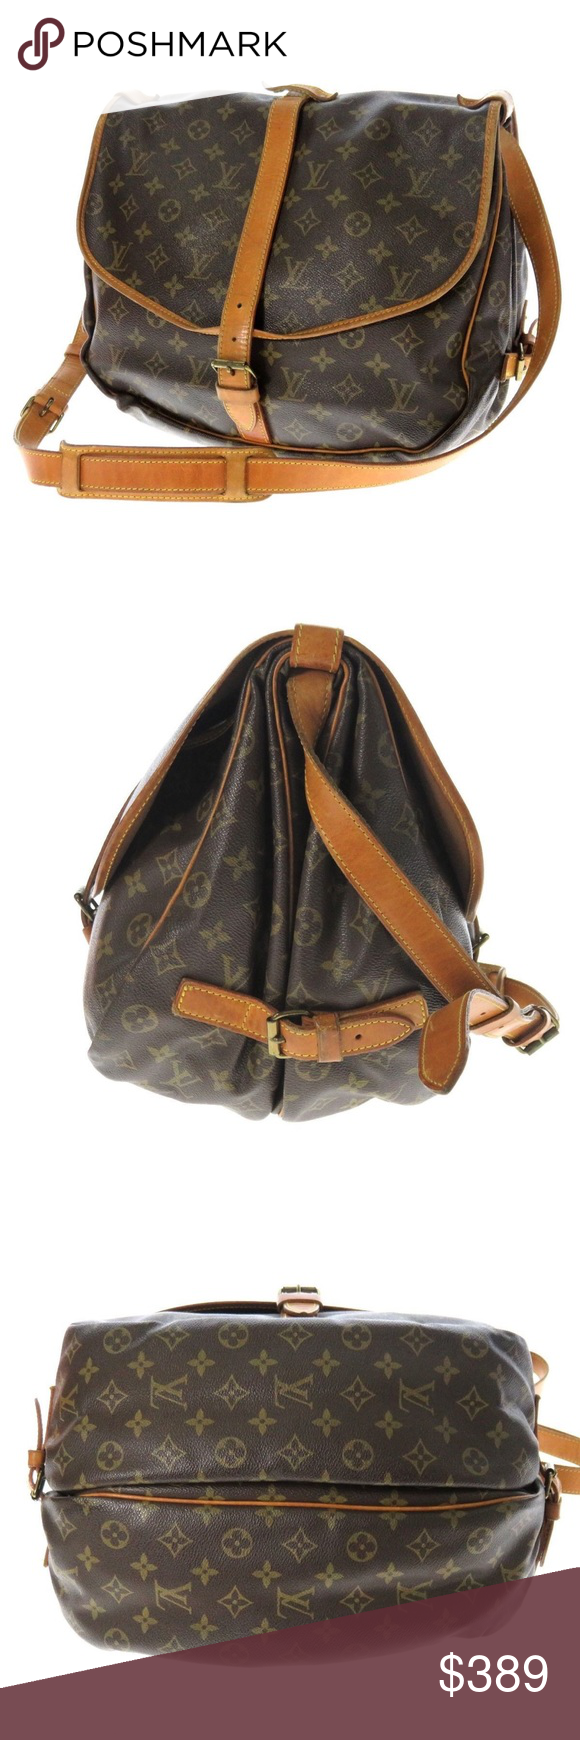 """Authentic Louis Vuitton Saumur 35 Messenger Bag Classic, unisex saddle bag with style & functionality.  Exterior leather & canvas is in great condition. Interior odor free. Features: double saddle compartments, side buckle vachetta leather closures at its frontal flaps, brown fabric interior w slip compartments, adjustable shoulder to crossbody strap. Dim: 13.8"""" W x 11"""" H x 8.7"""" D  Strap: 42"""" L Made In: France Date Code: AR8912 [1989] Brass, leather & canvas has been cleaned, polished…"""